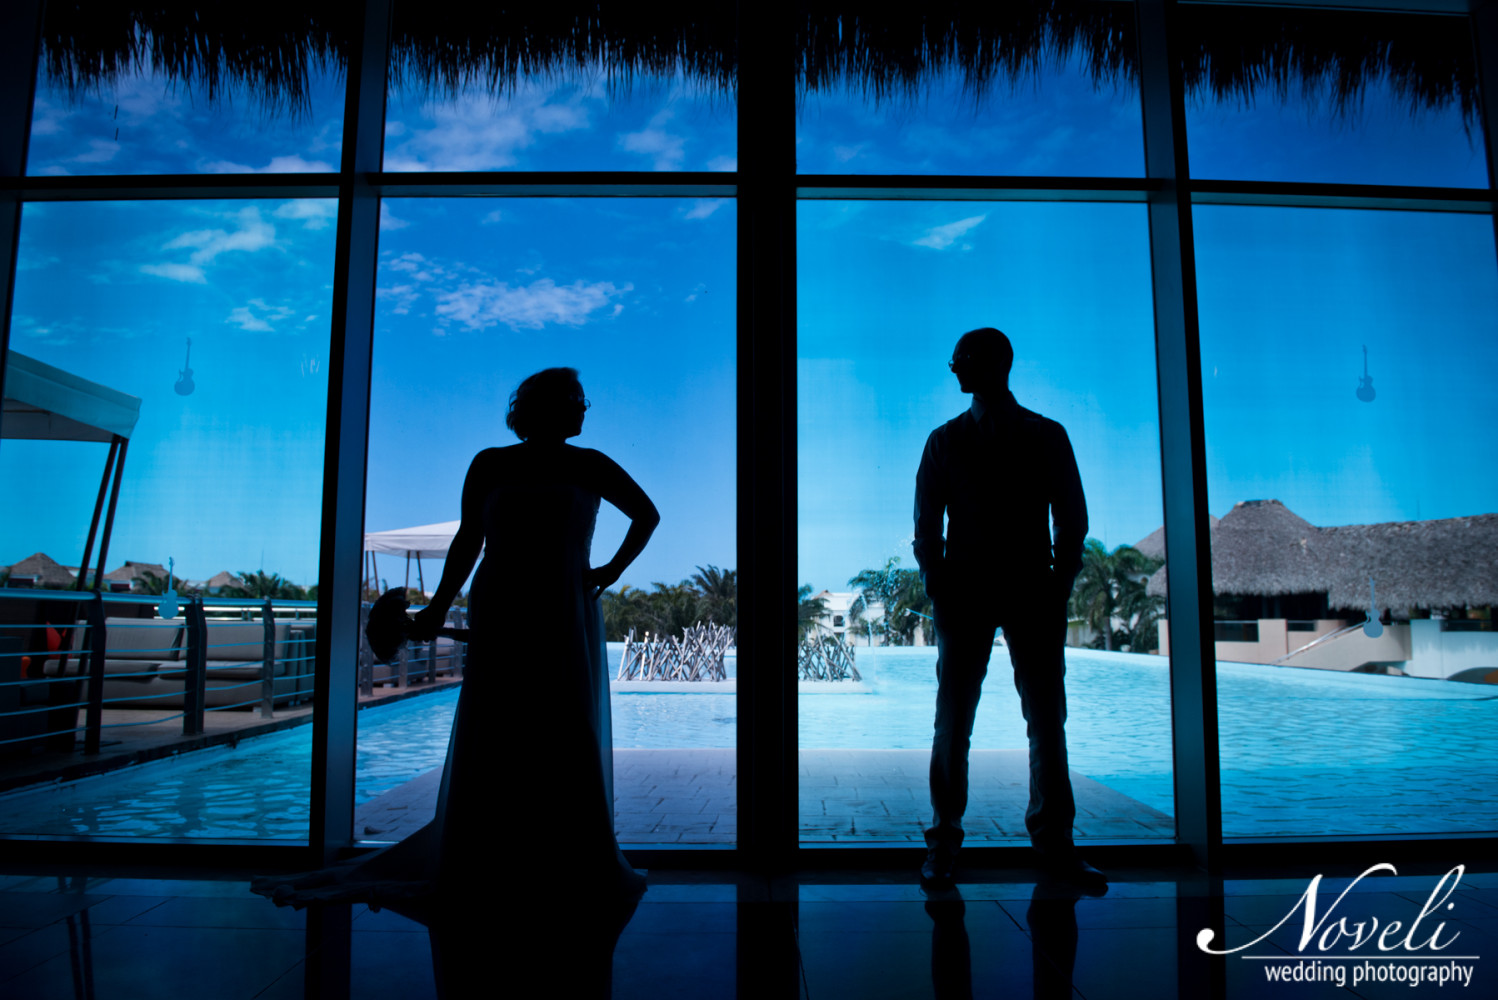 Hard Rock Casino Punta Cana Wedding | Noveli Wedding Photography